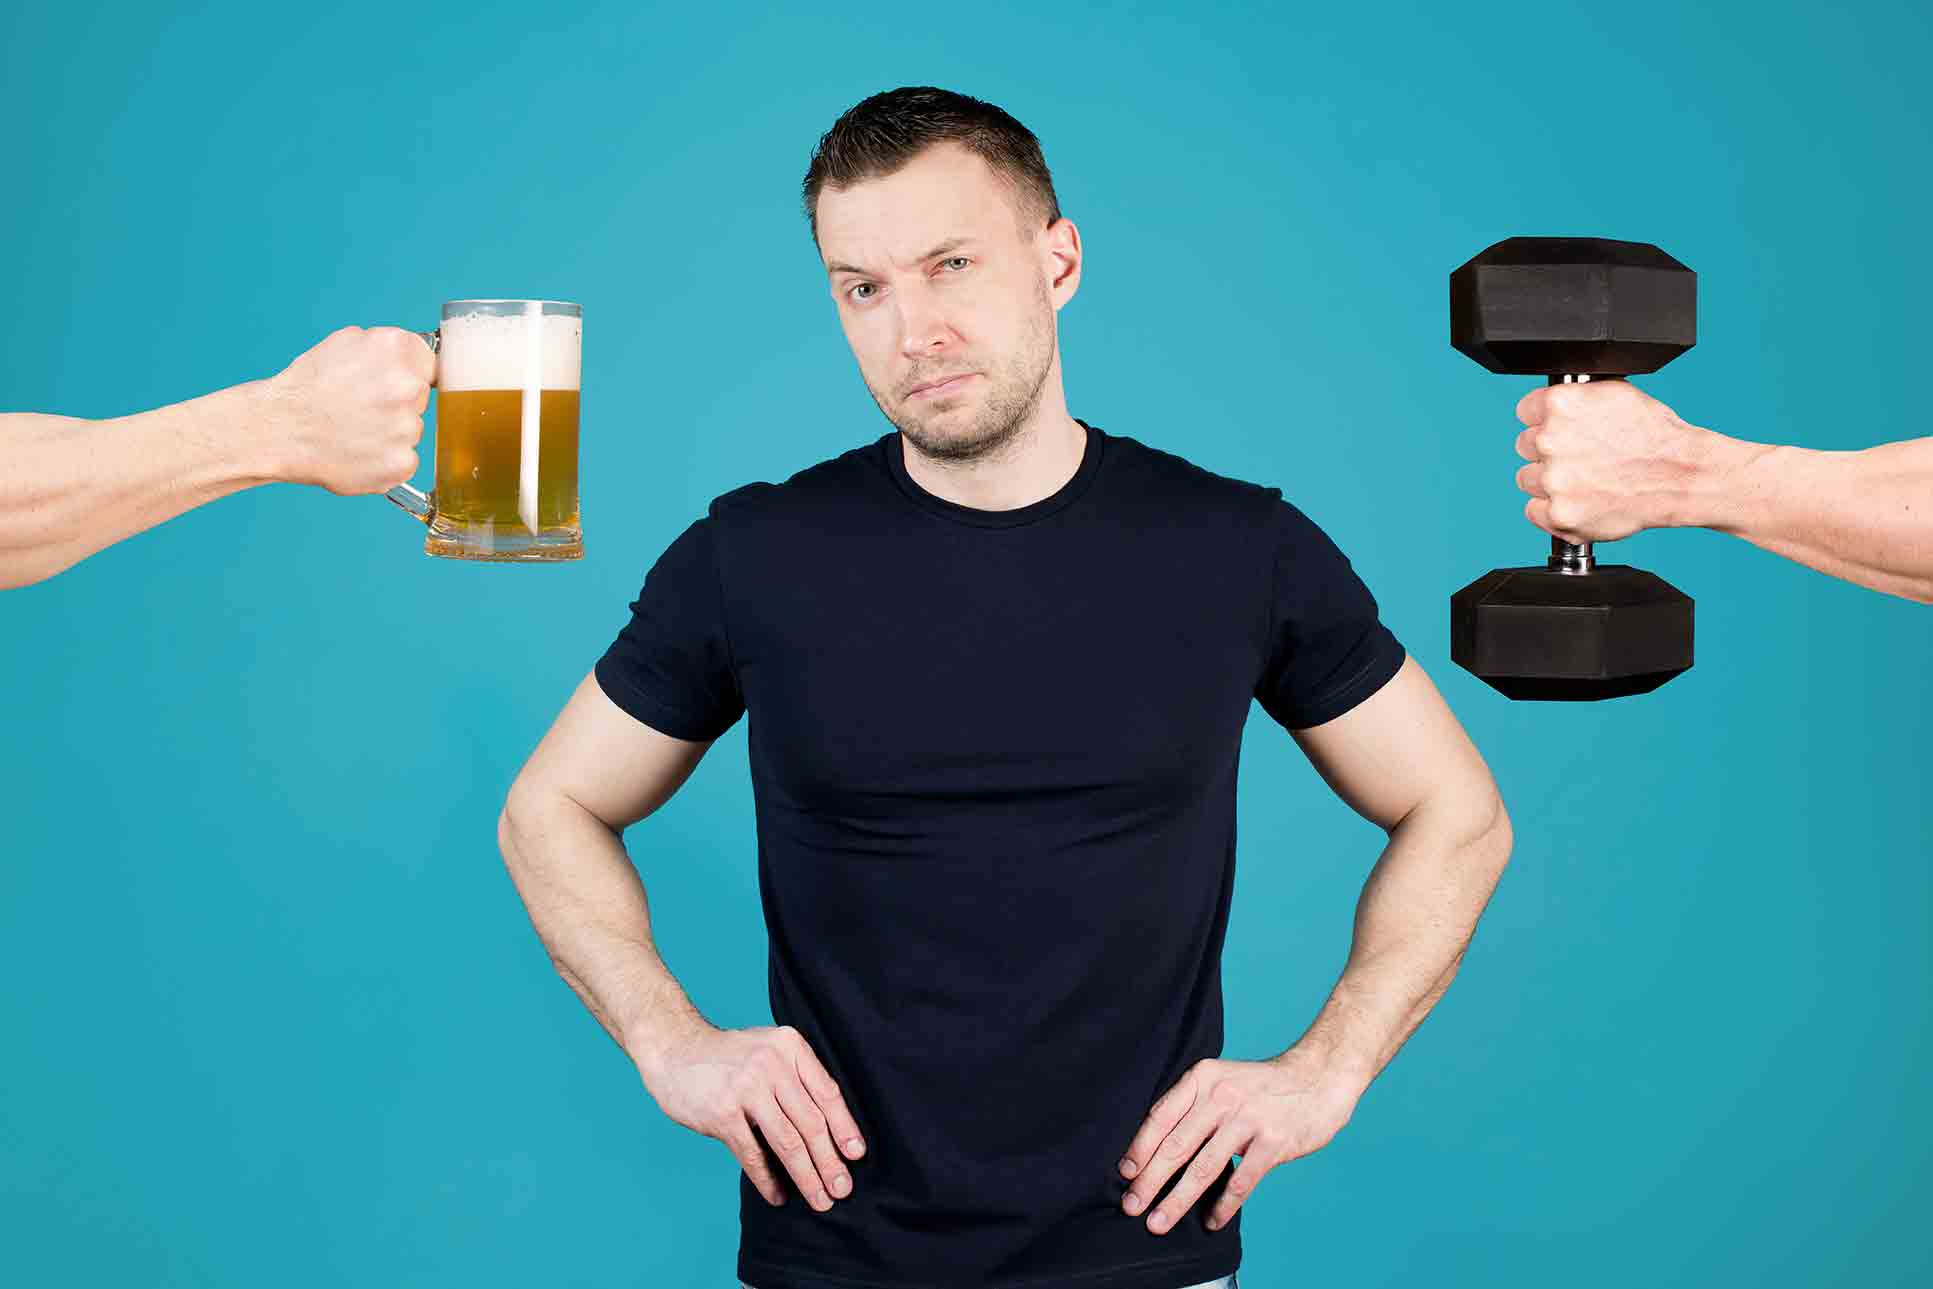 Is It Bad To Workout After Drinking? - FIREBRED NUTRITION